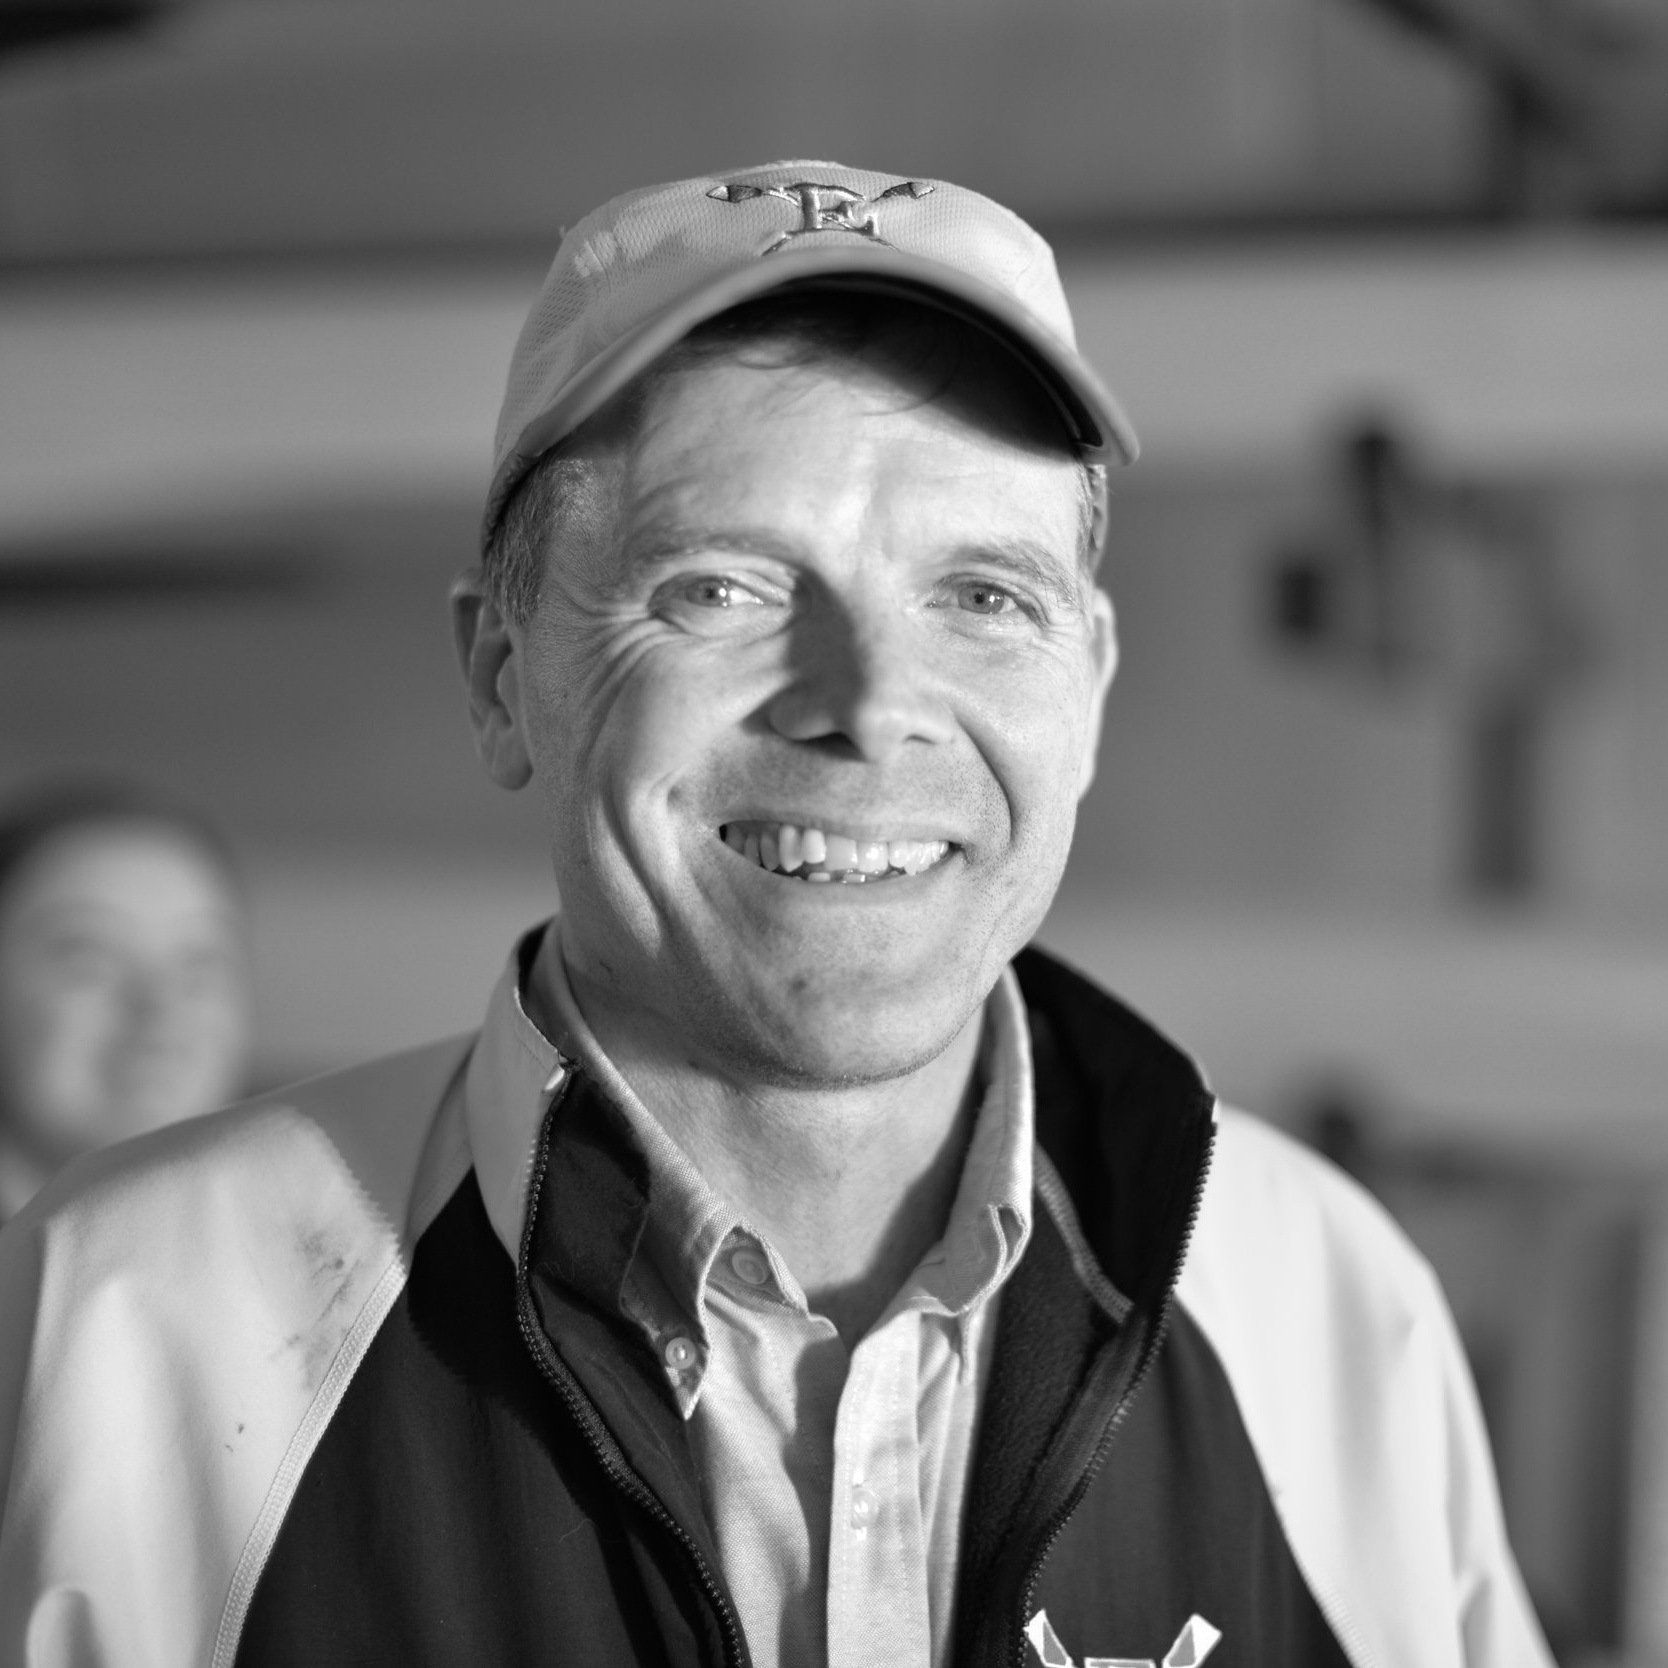 BRIAN WAGNER - Head Youth Women's Coachcoachbrian@everettrowing.com